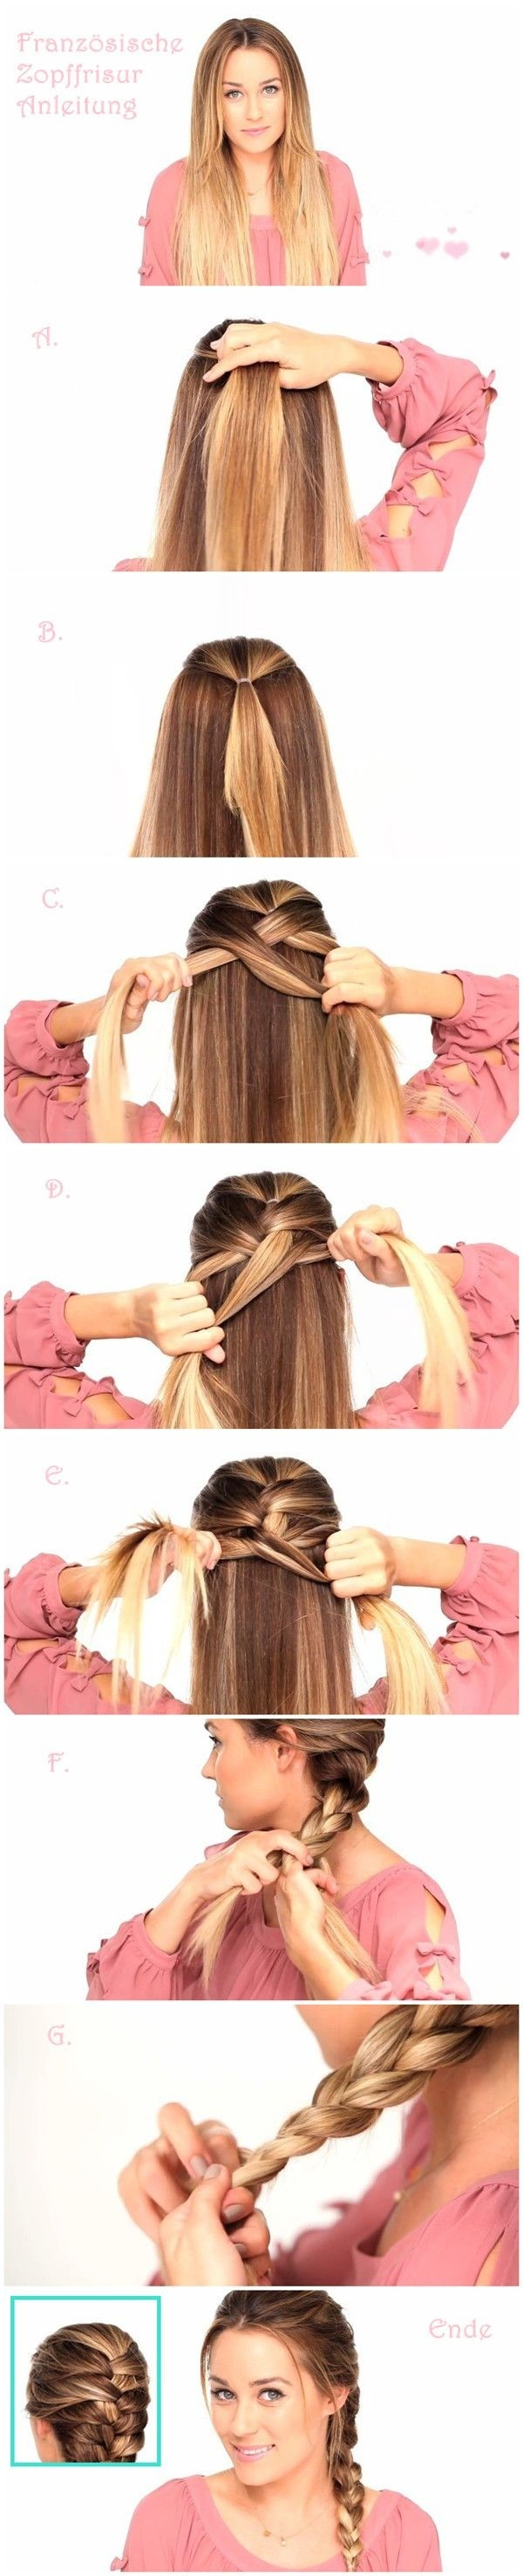 Incredible 10 French Braids Hairstyles Tutorials Everyday Hair Styles Short Hairstyles For Black Women Fulllsitofus